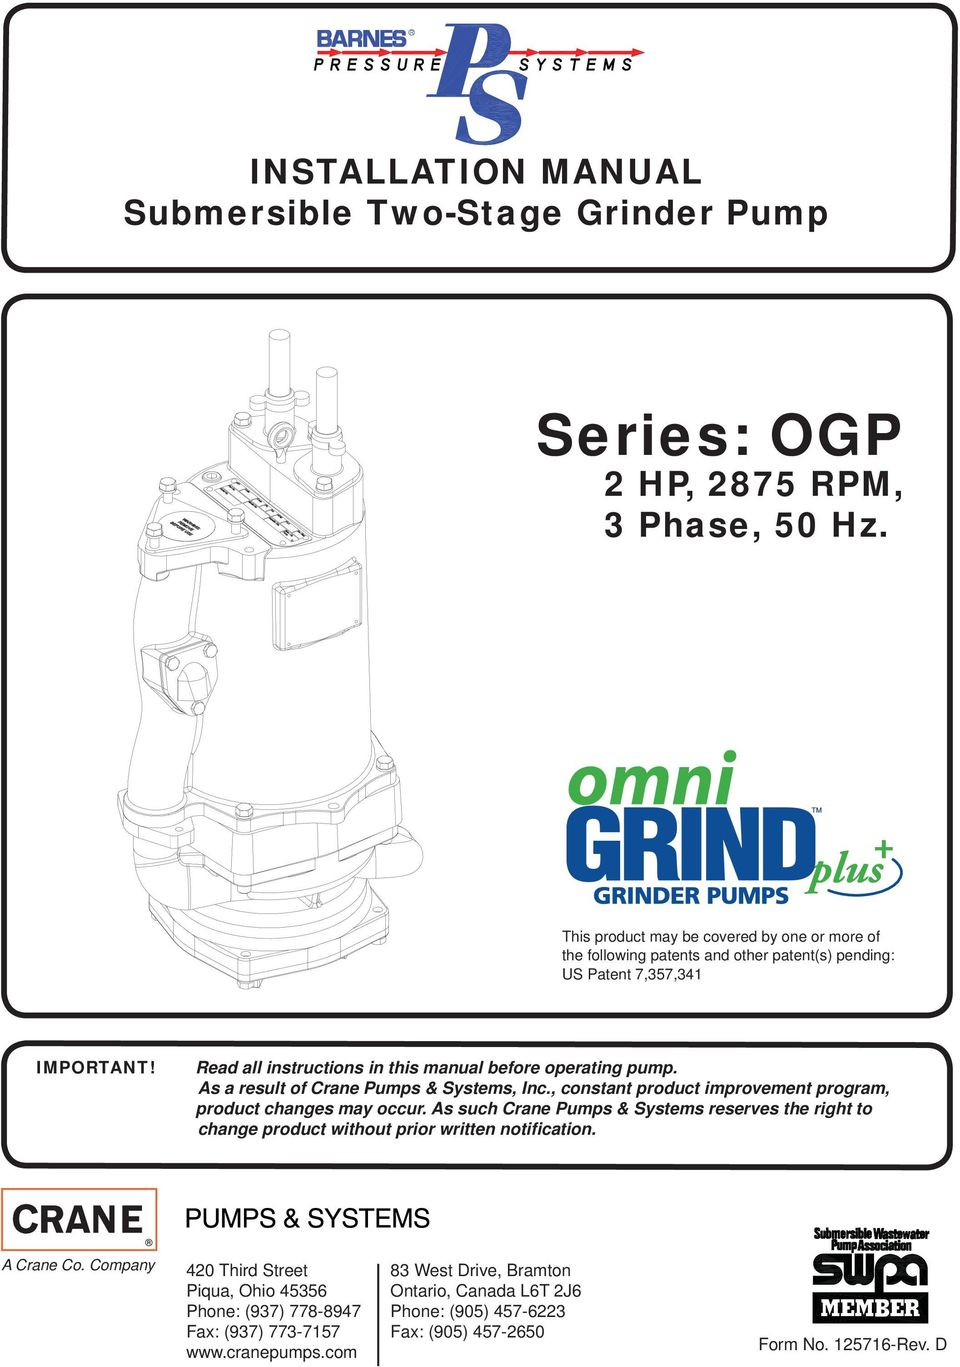 Read all instructions in this manual before operating pump. As a result of Crane Pumps & Systems, Inc., constant product improvement program, product changes may occur.